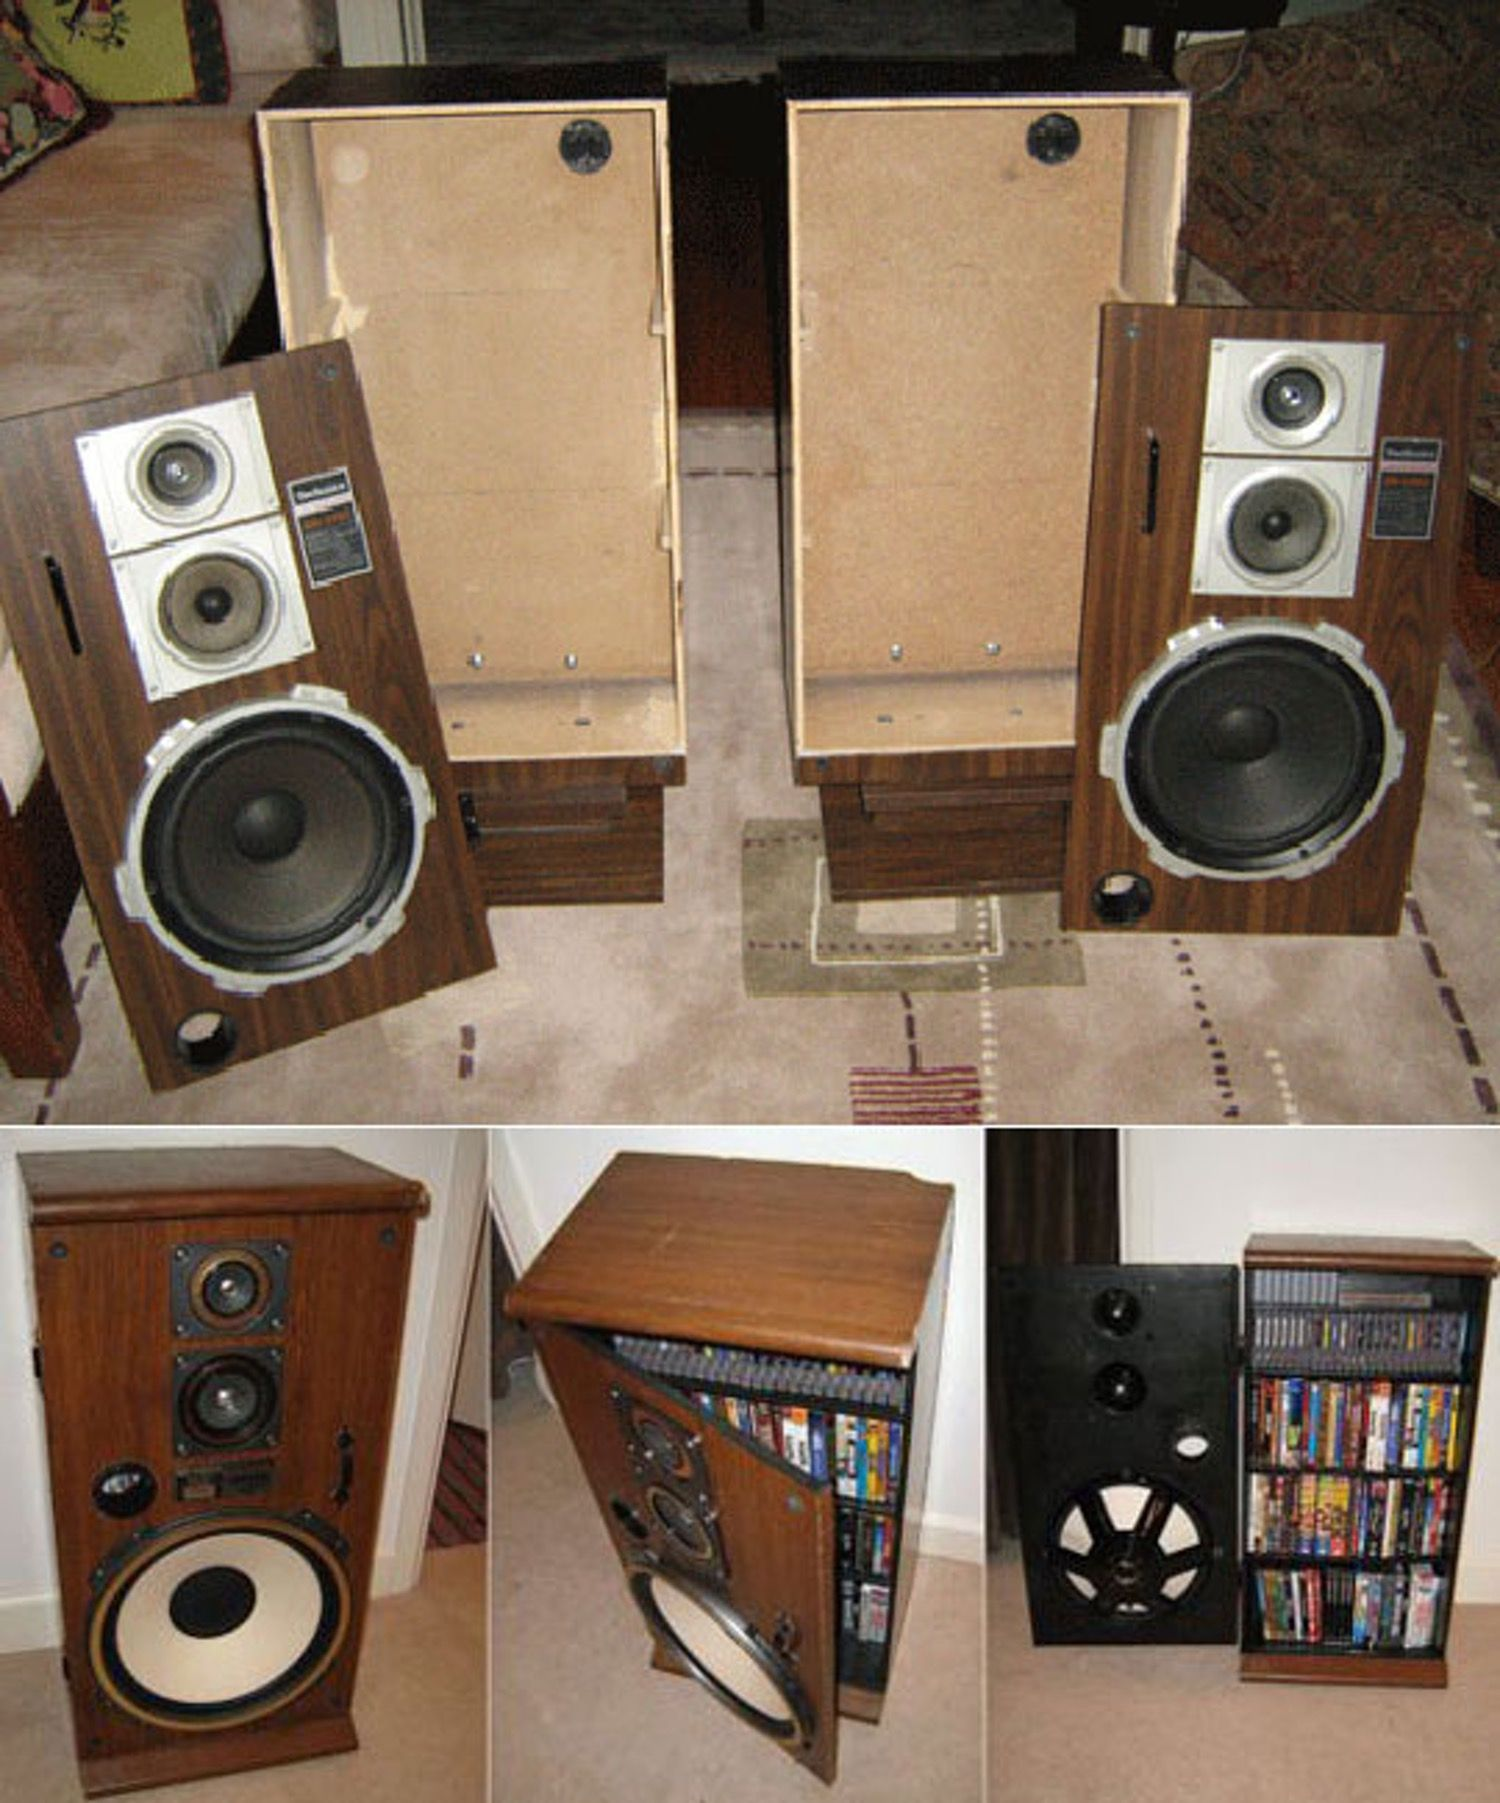 How To: Turn A Stereo Speaker Into A Cabinet